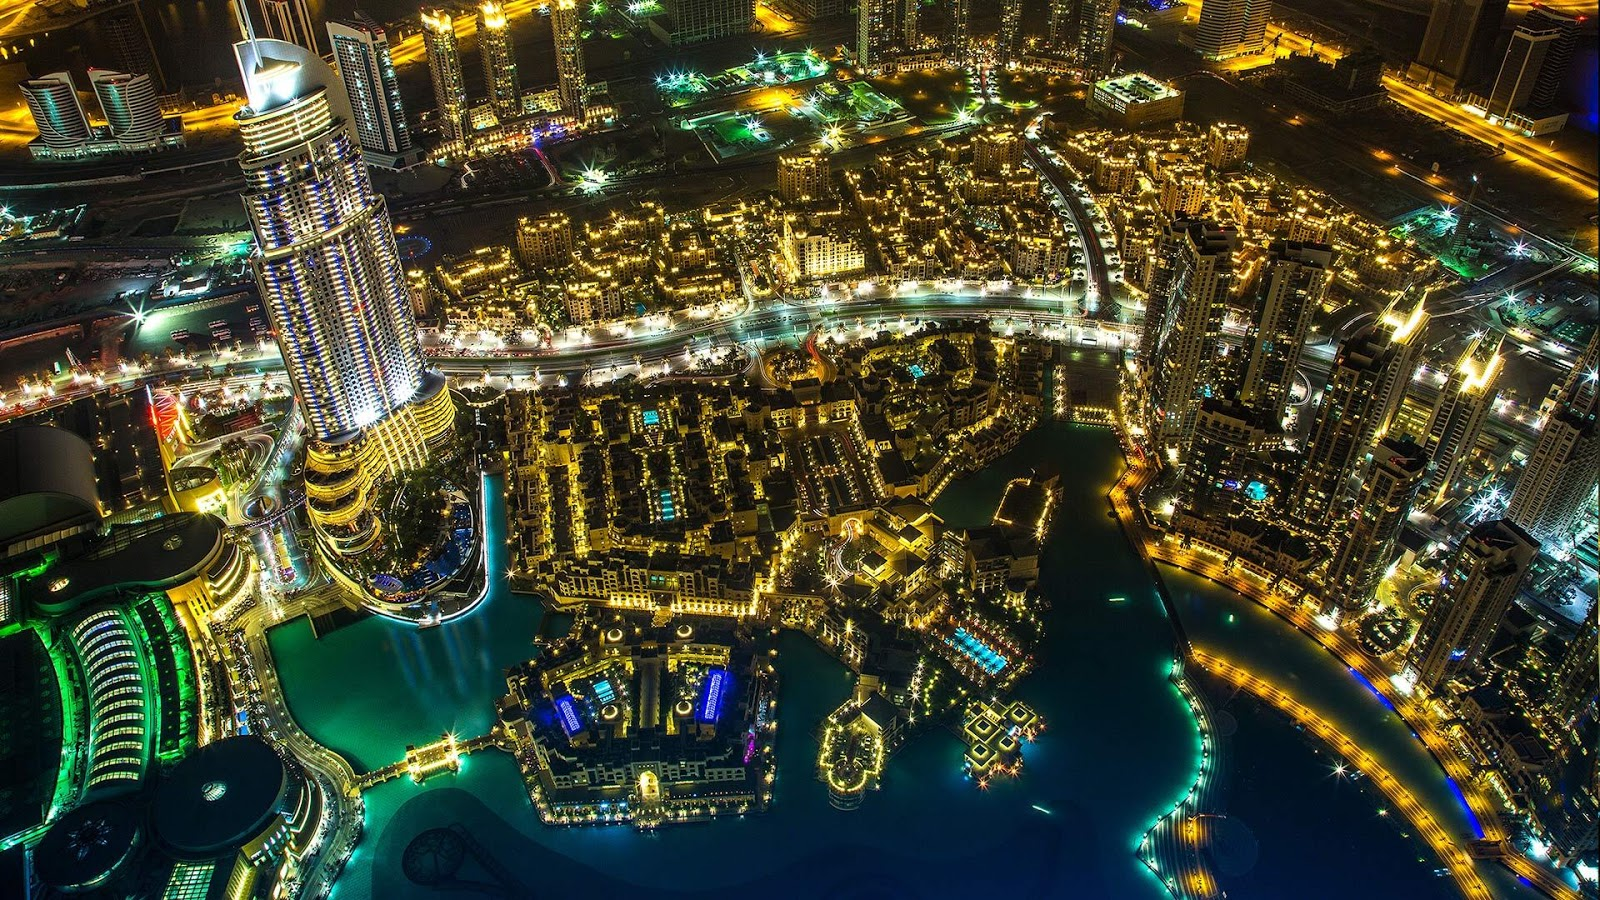 Dubai Night Live Wallpaper Jrn765wO_6ppN3VfPFeo